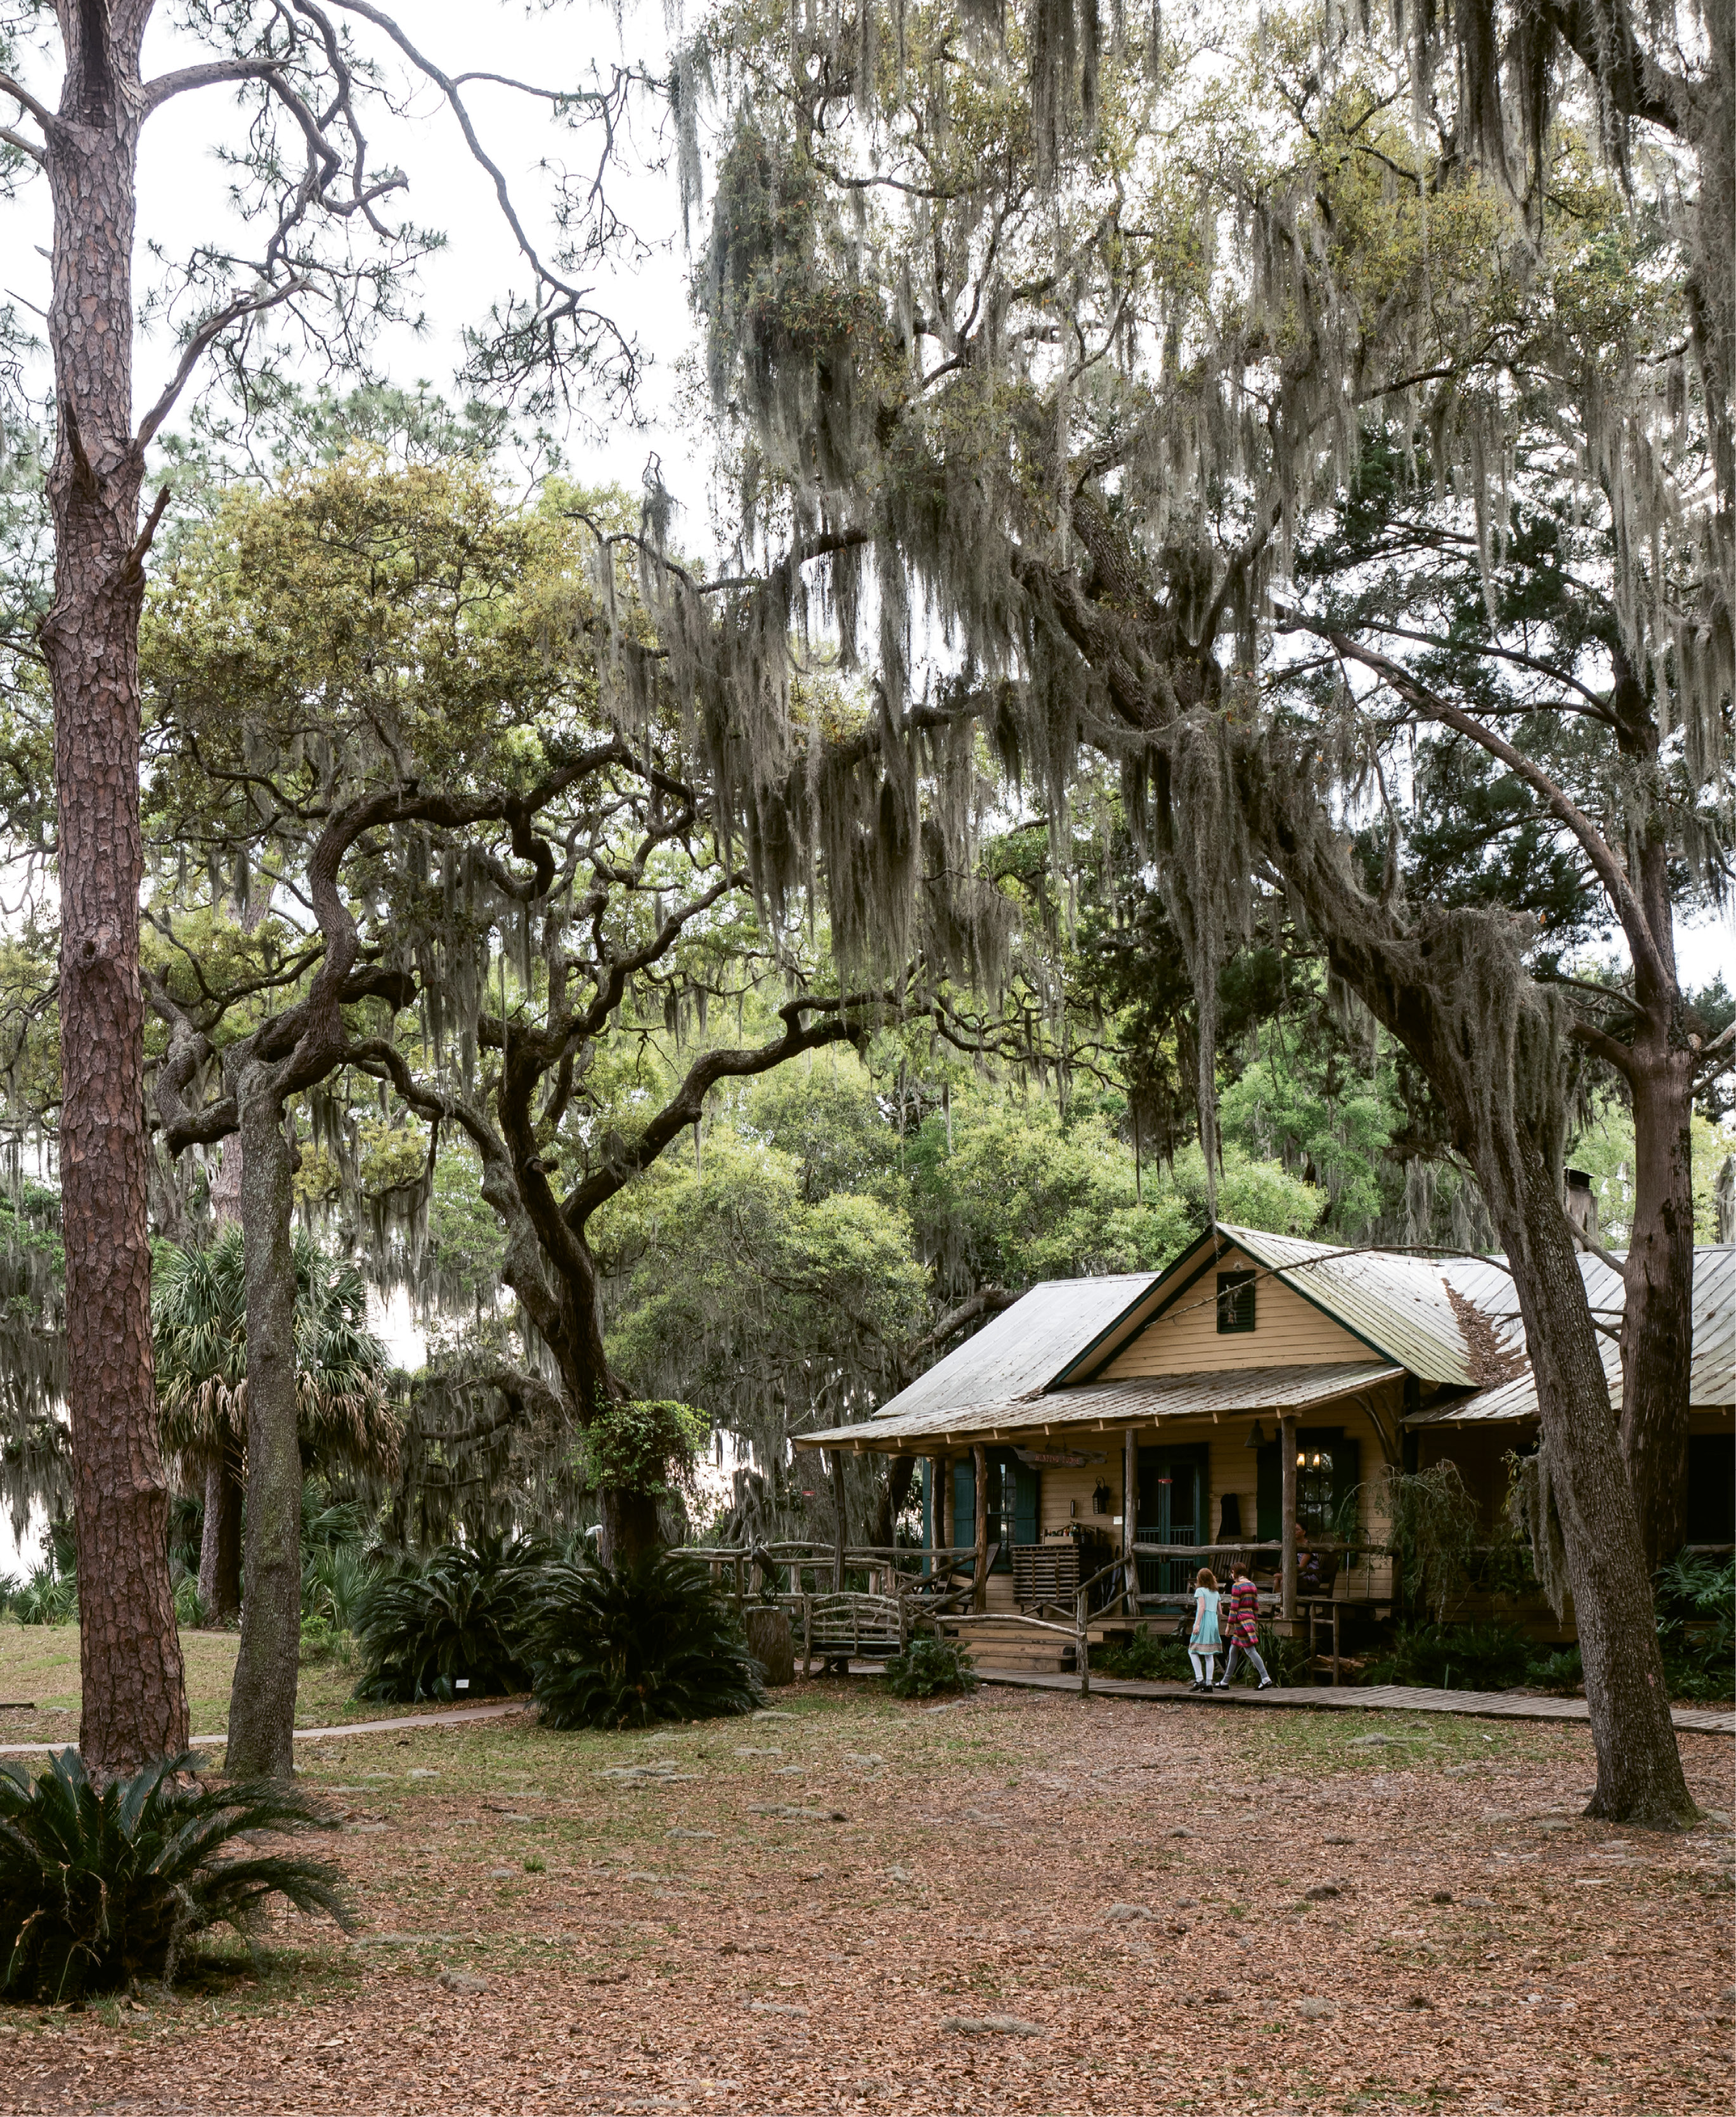 Fast ferry: It's a 15-minute boat ride to bridge-less Little St. Simons Island and the former private hunting lodge that welcomes up to 32 guests each night.